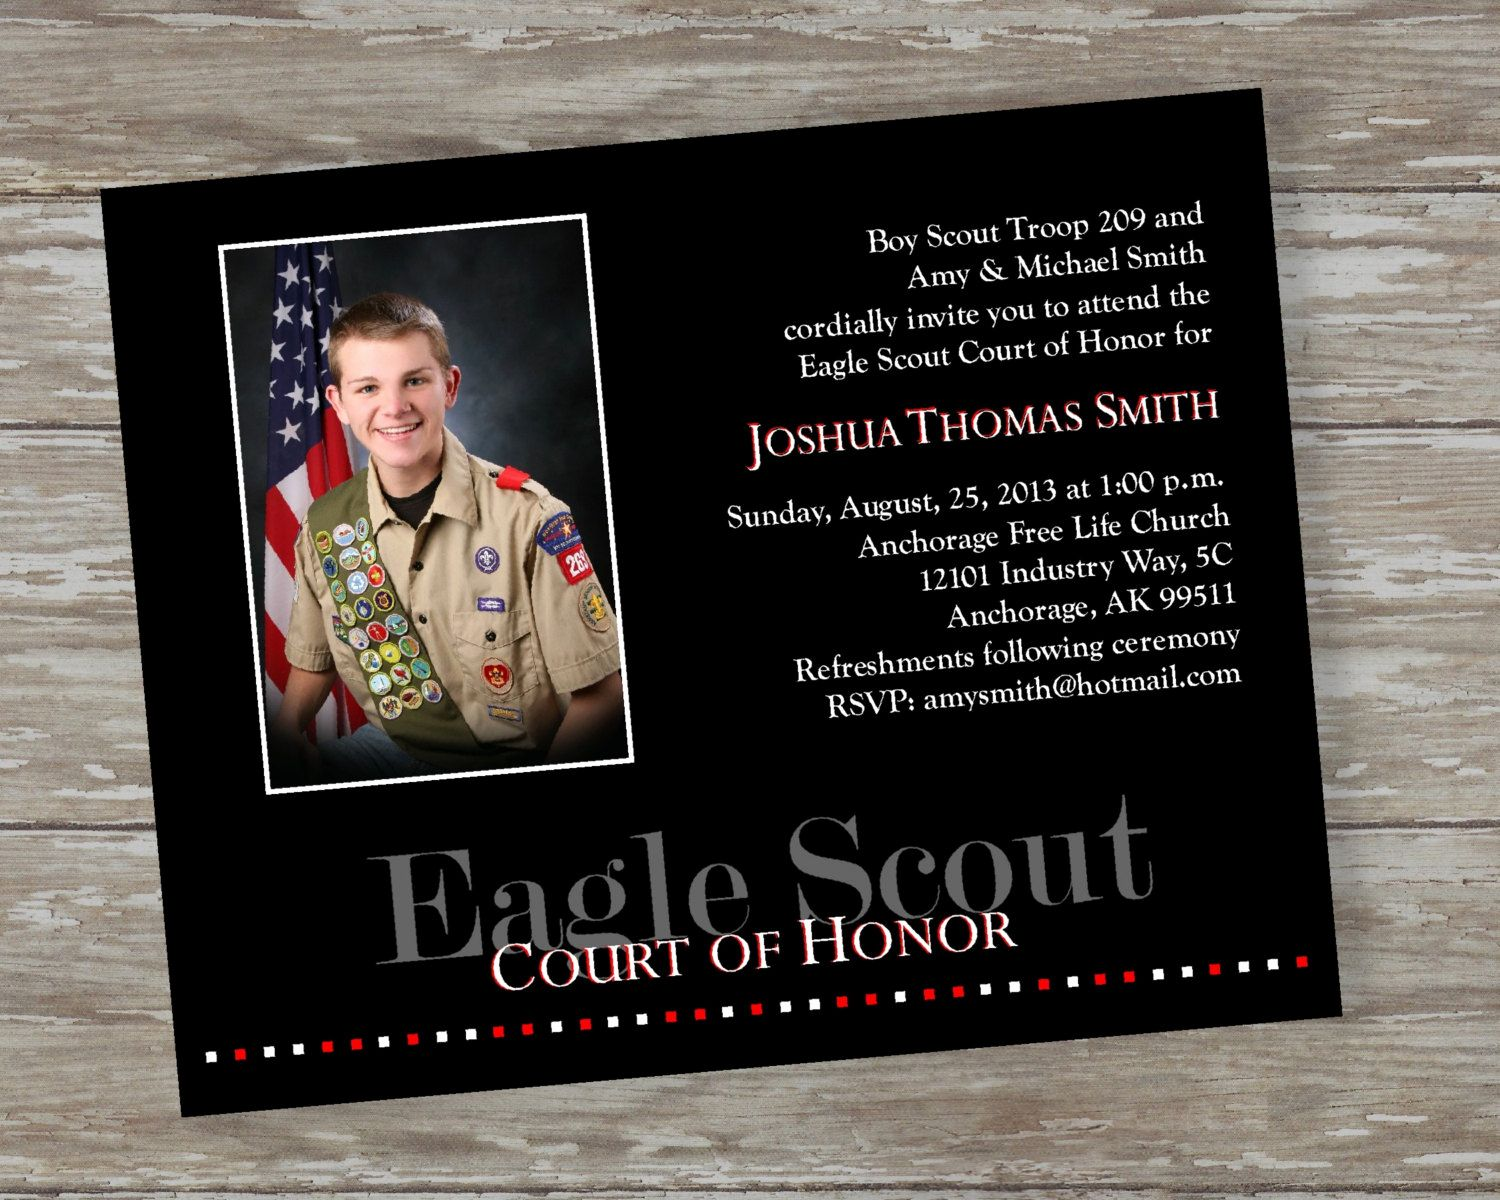 Free Eagle Scout Invitation Template Inspirational Eagle Scout Court Of Honor Invitations By Eagle Scout Invitation Template Birthday Invitation Card Template